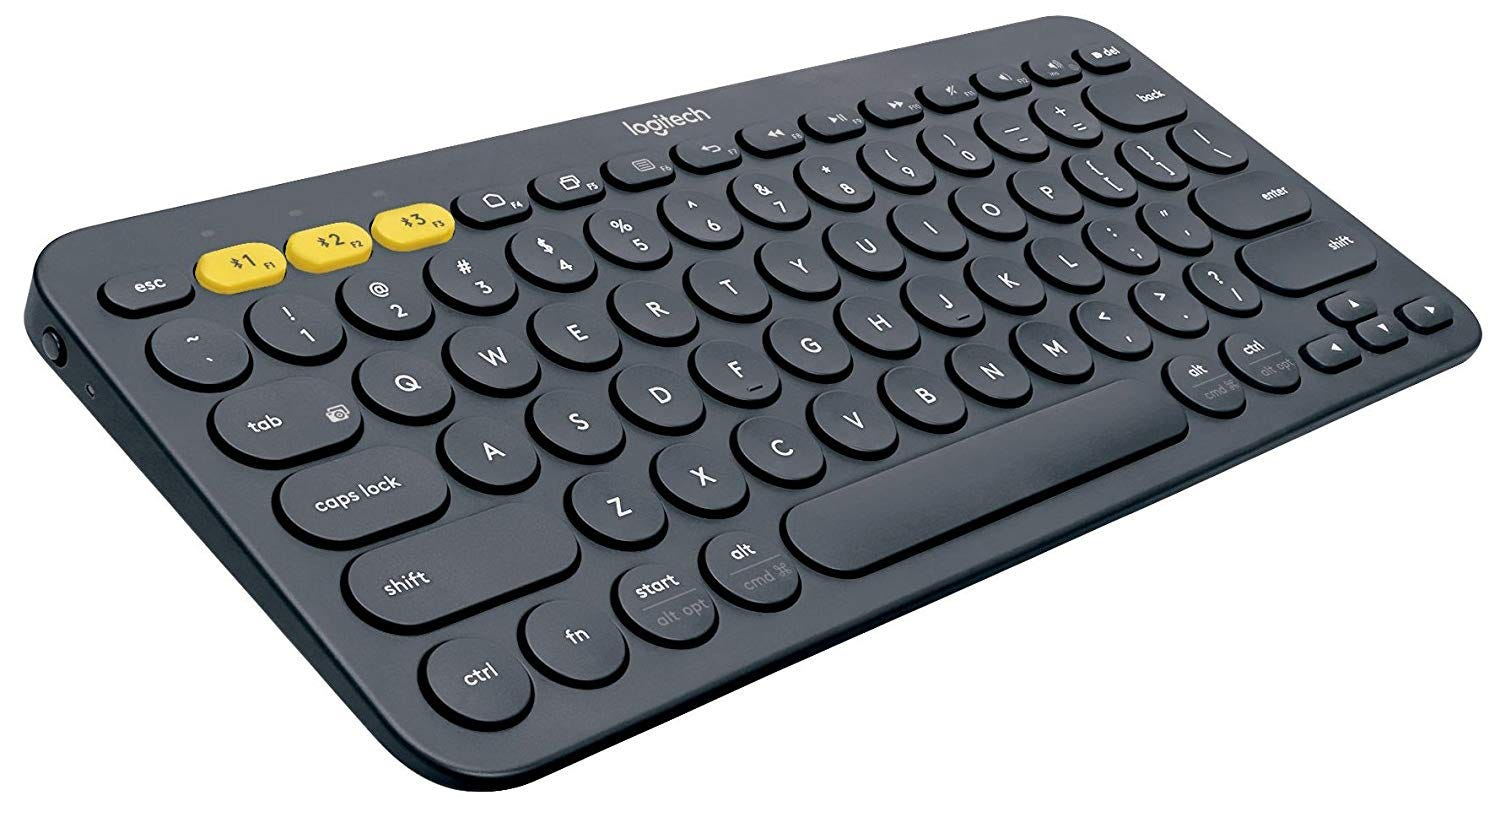 The Logitech K380 keyboard, from the front.